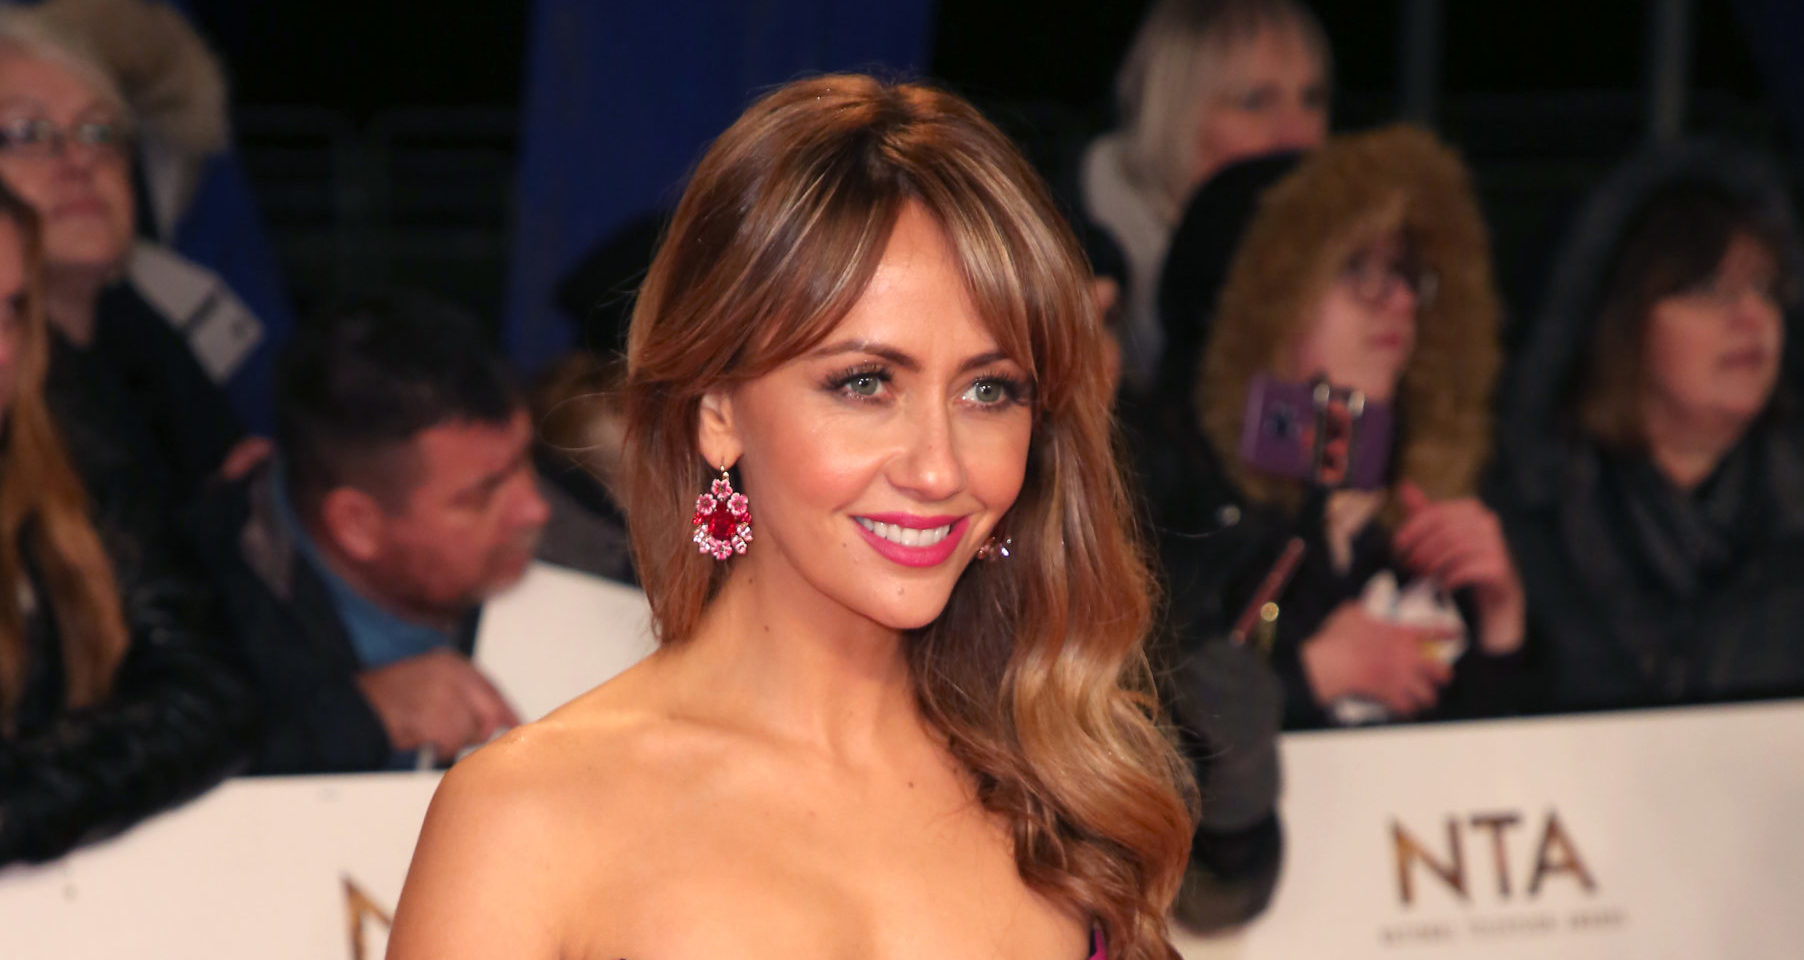 Corrie's Samia Longchambon reveals lockdown has helped her crippling anxiety